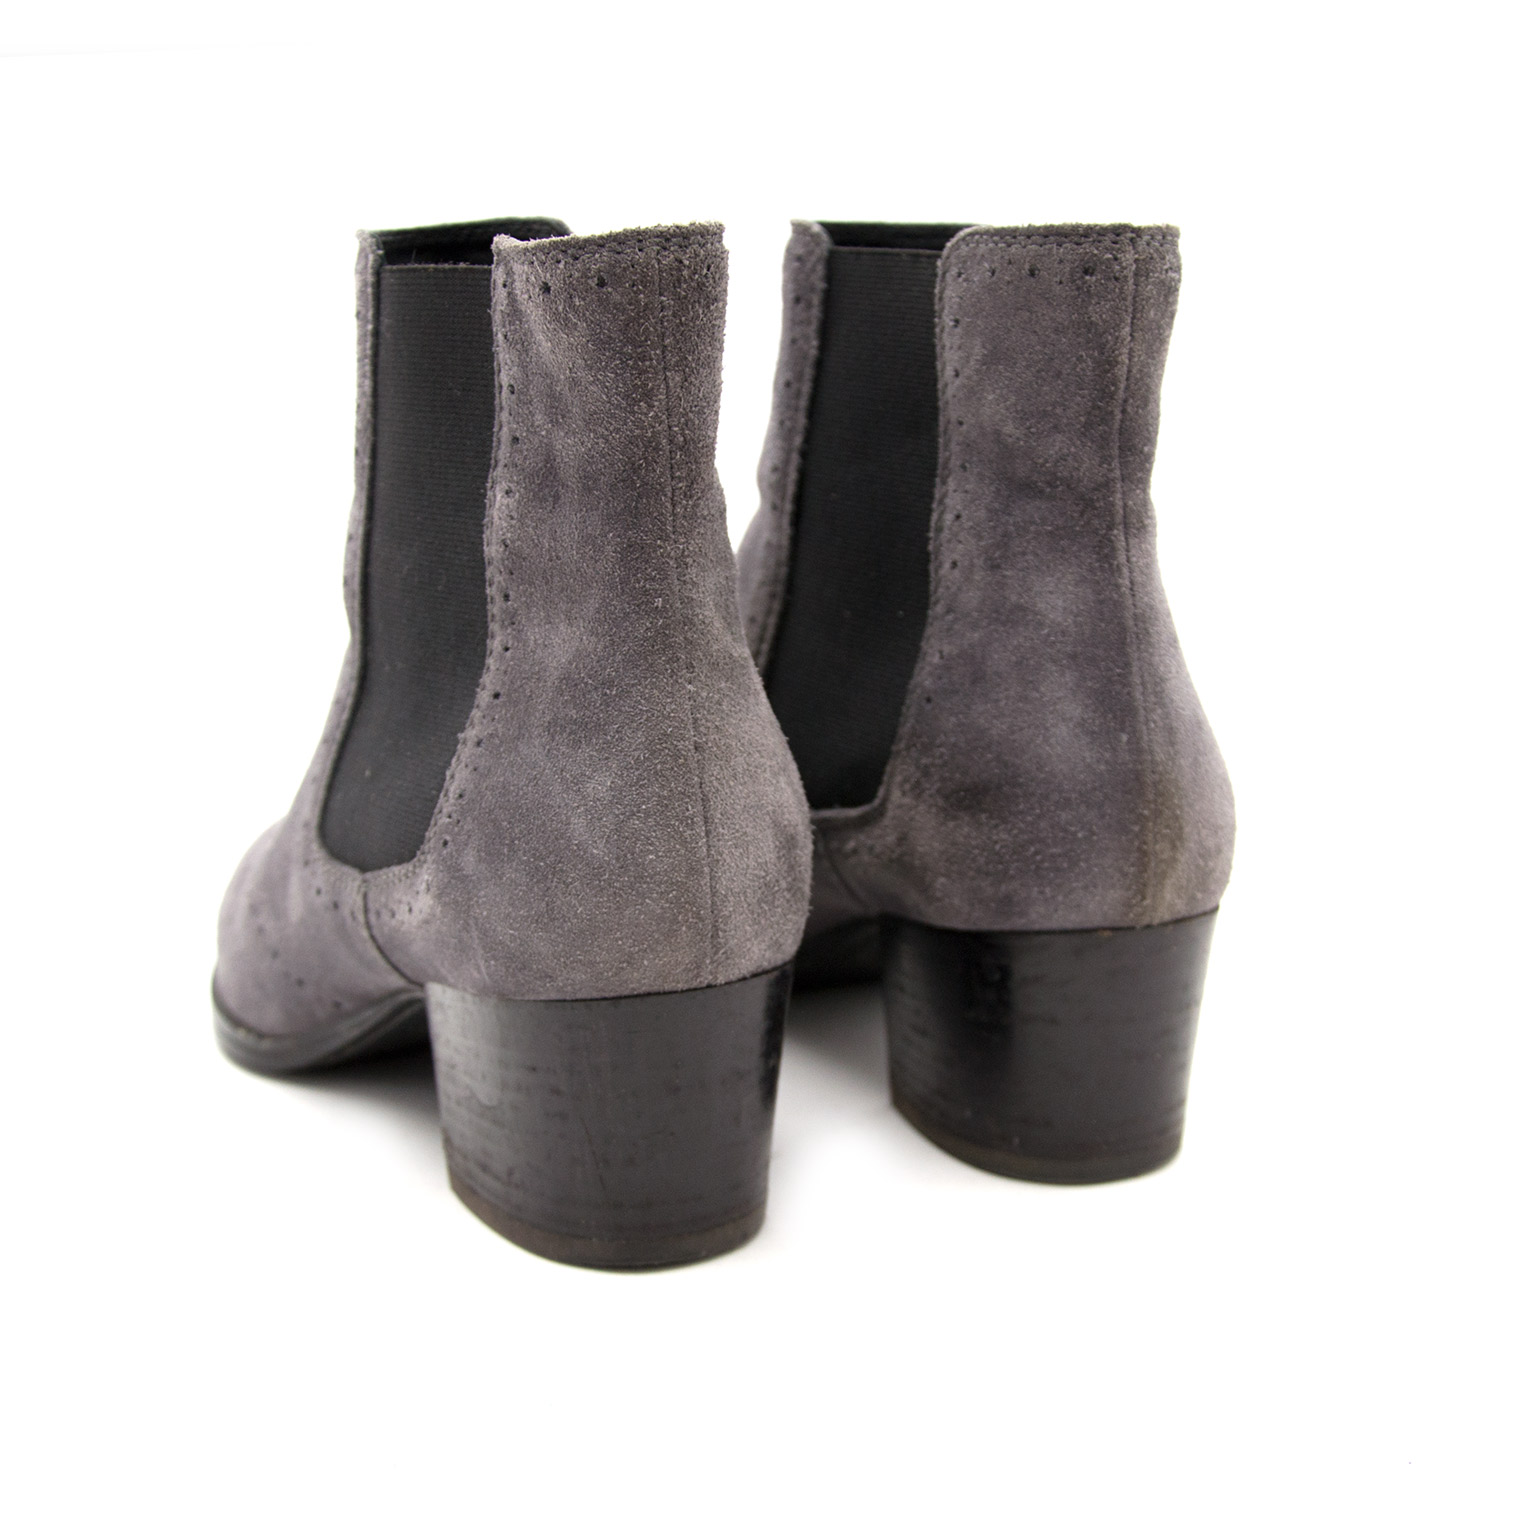 Looking for authentic Tod's Grey Suede Booties? We buy and sell online.